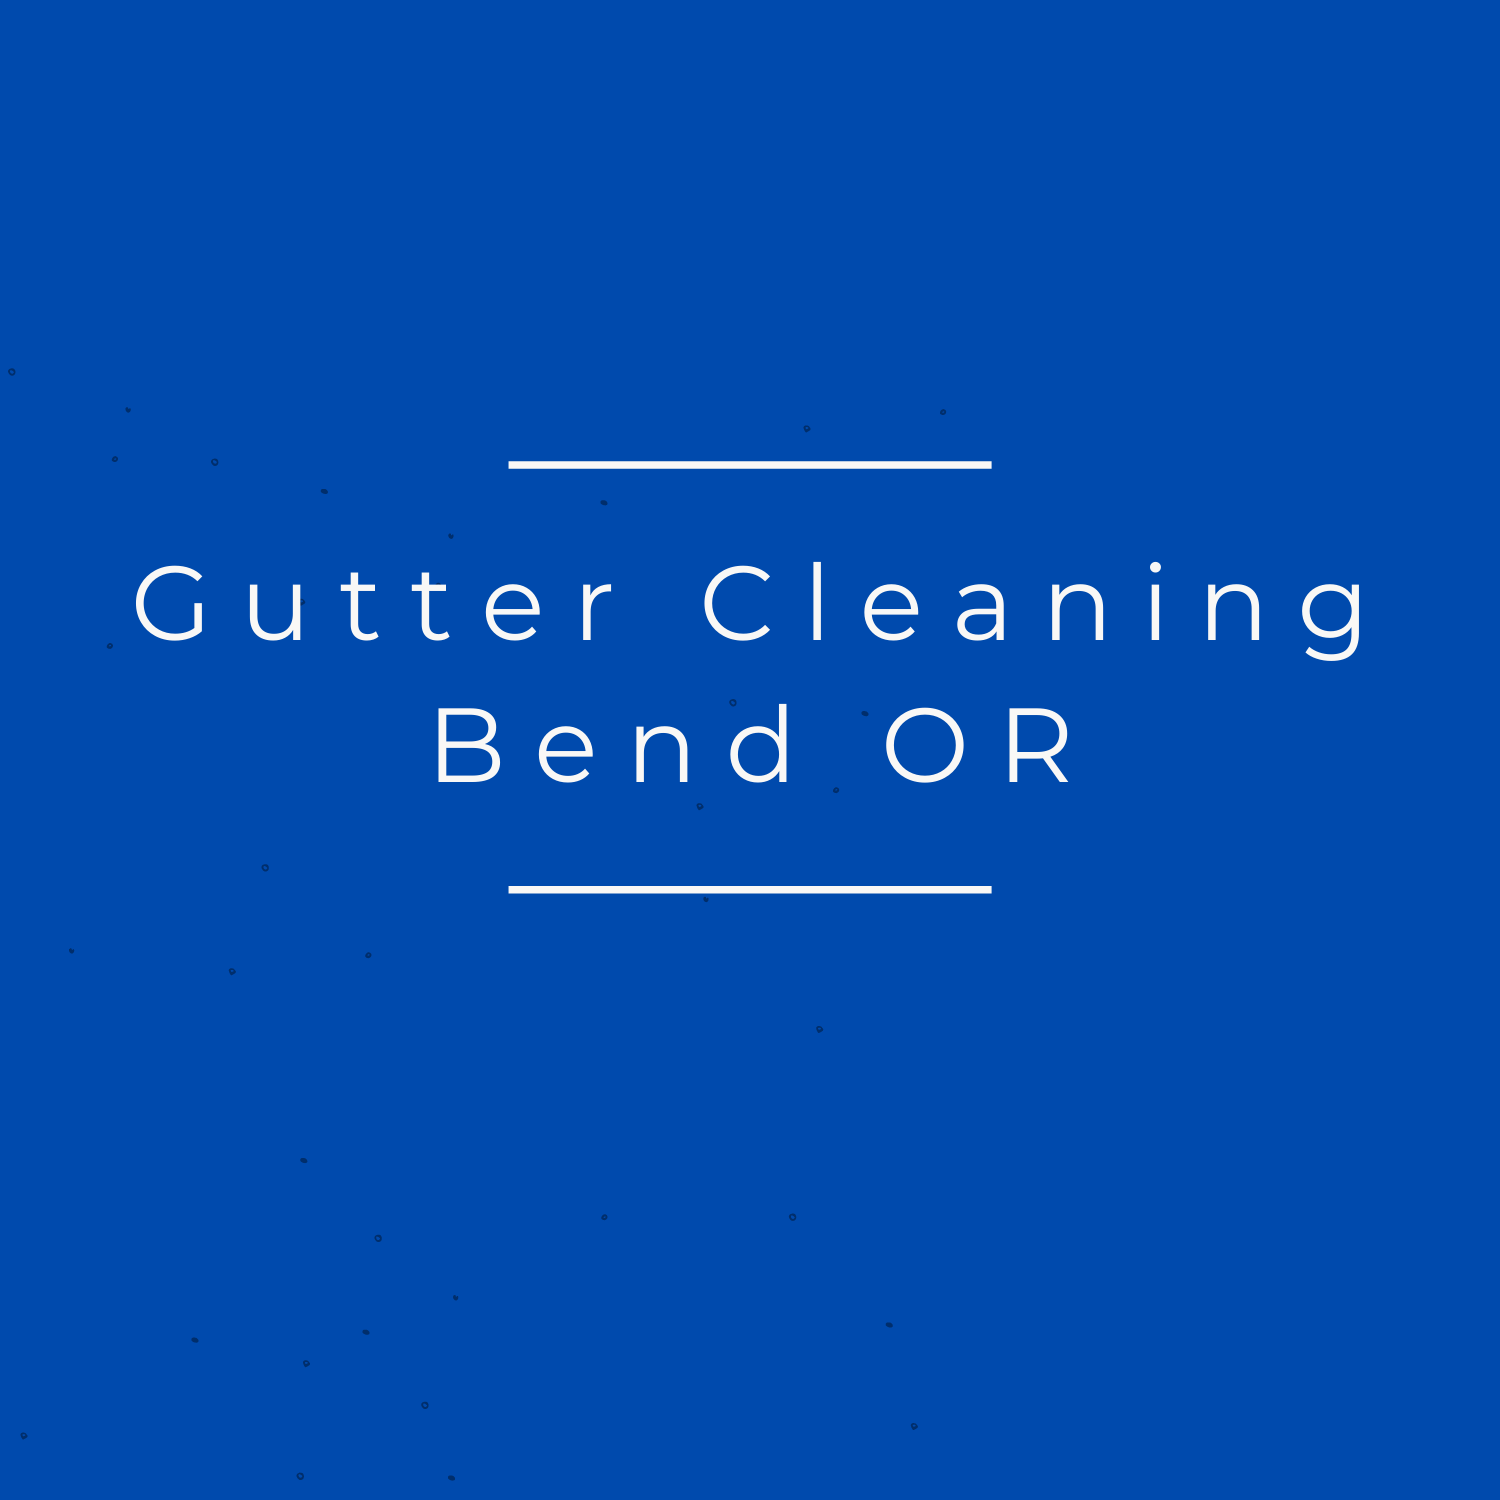 Gutter Cleaning Bend OR